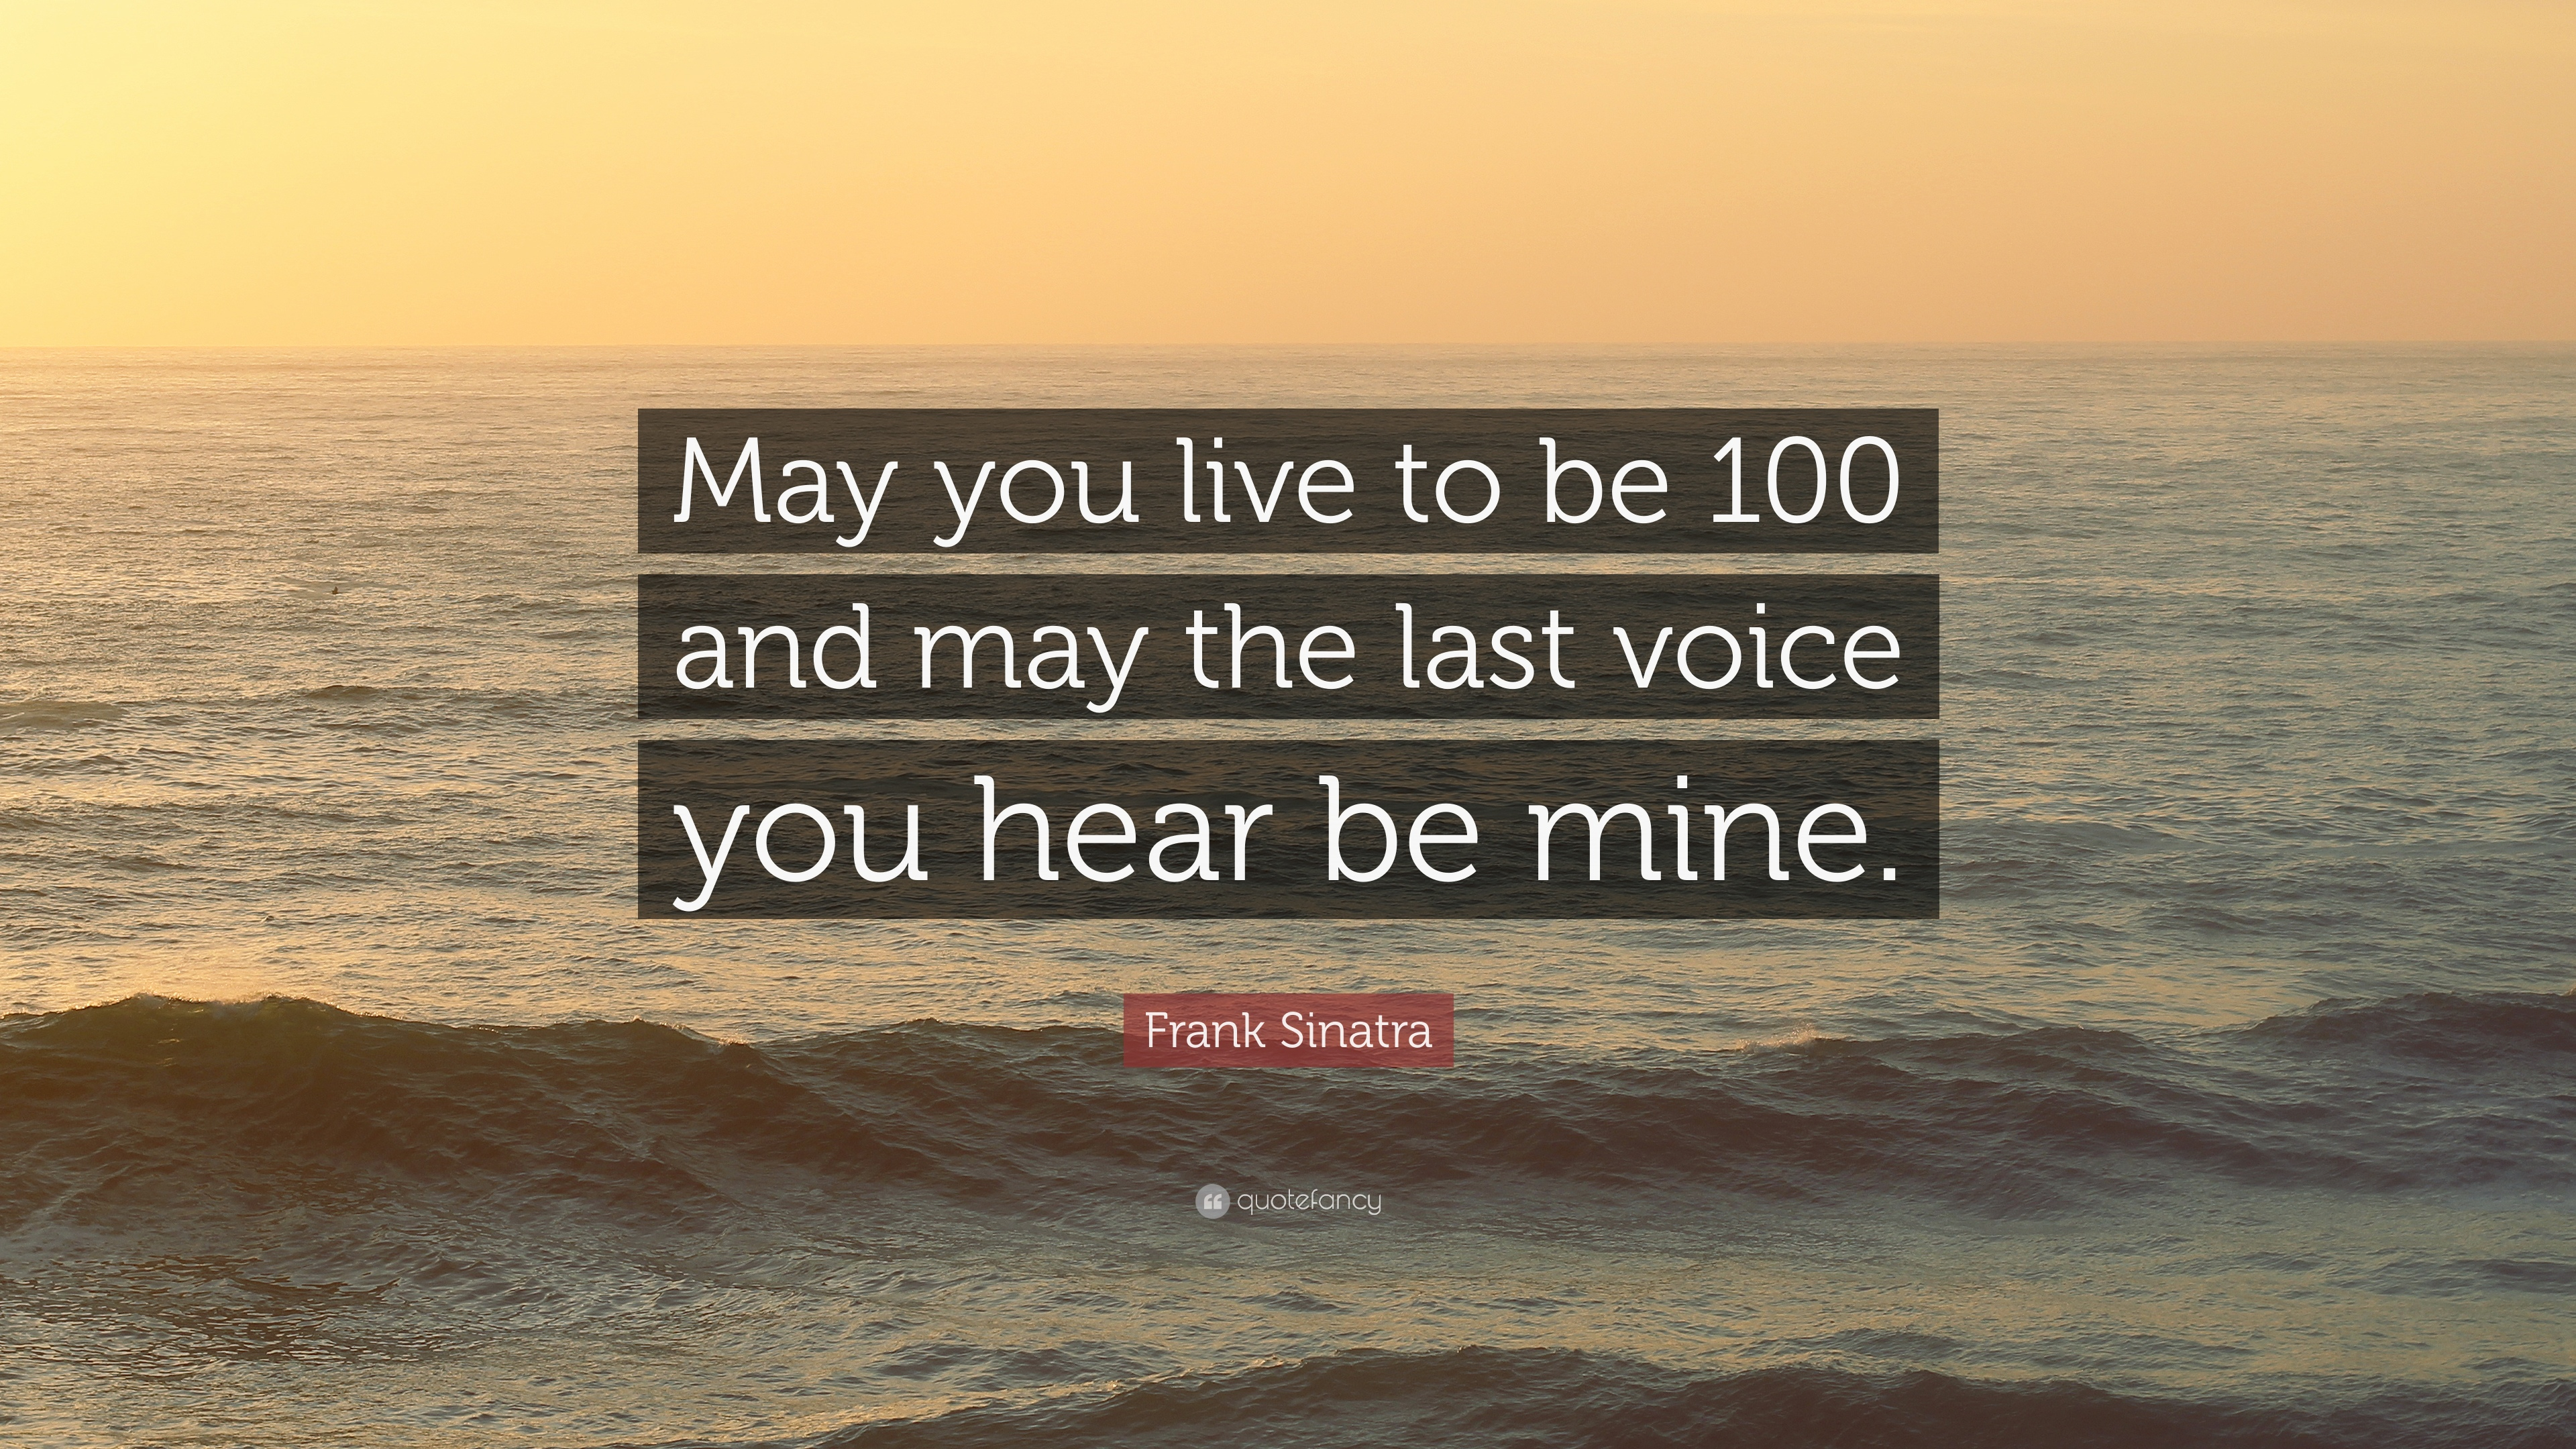 Frank Sinatra Quote May You Live To Be 100 And May The